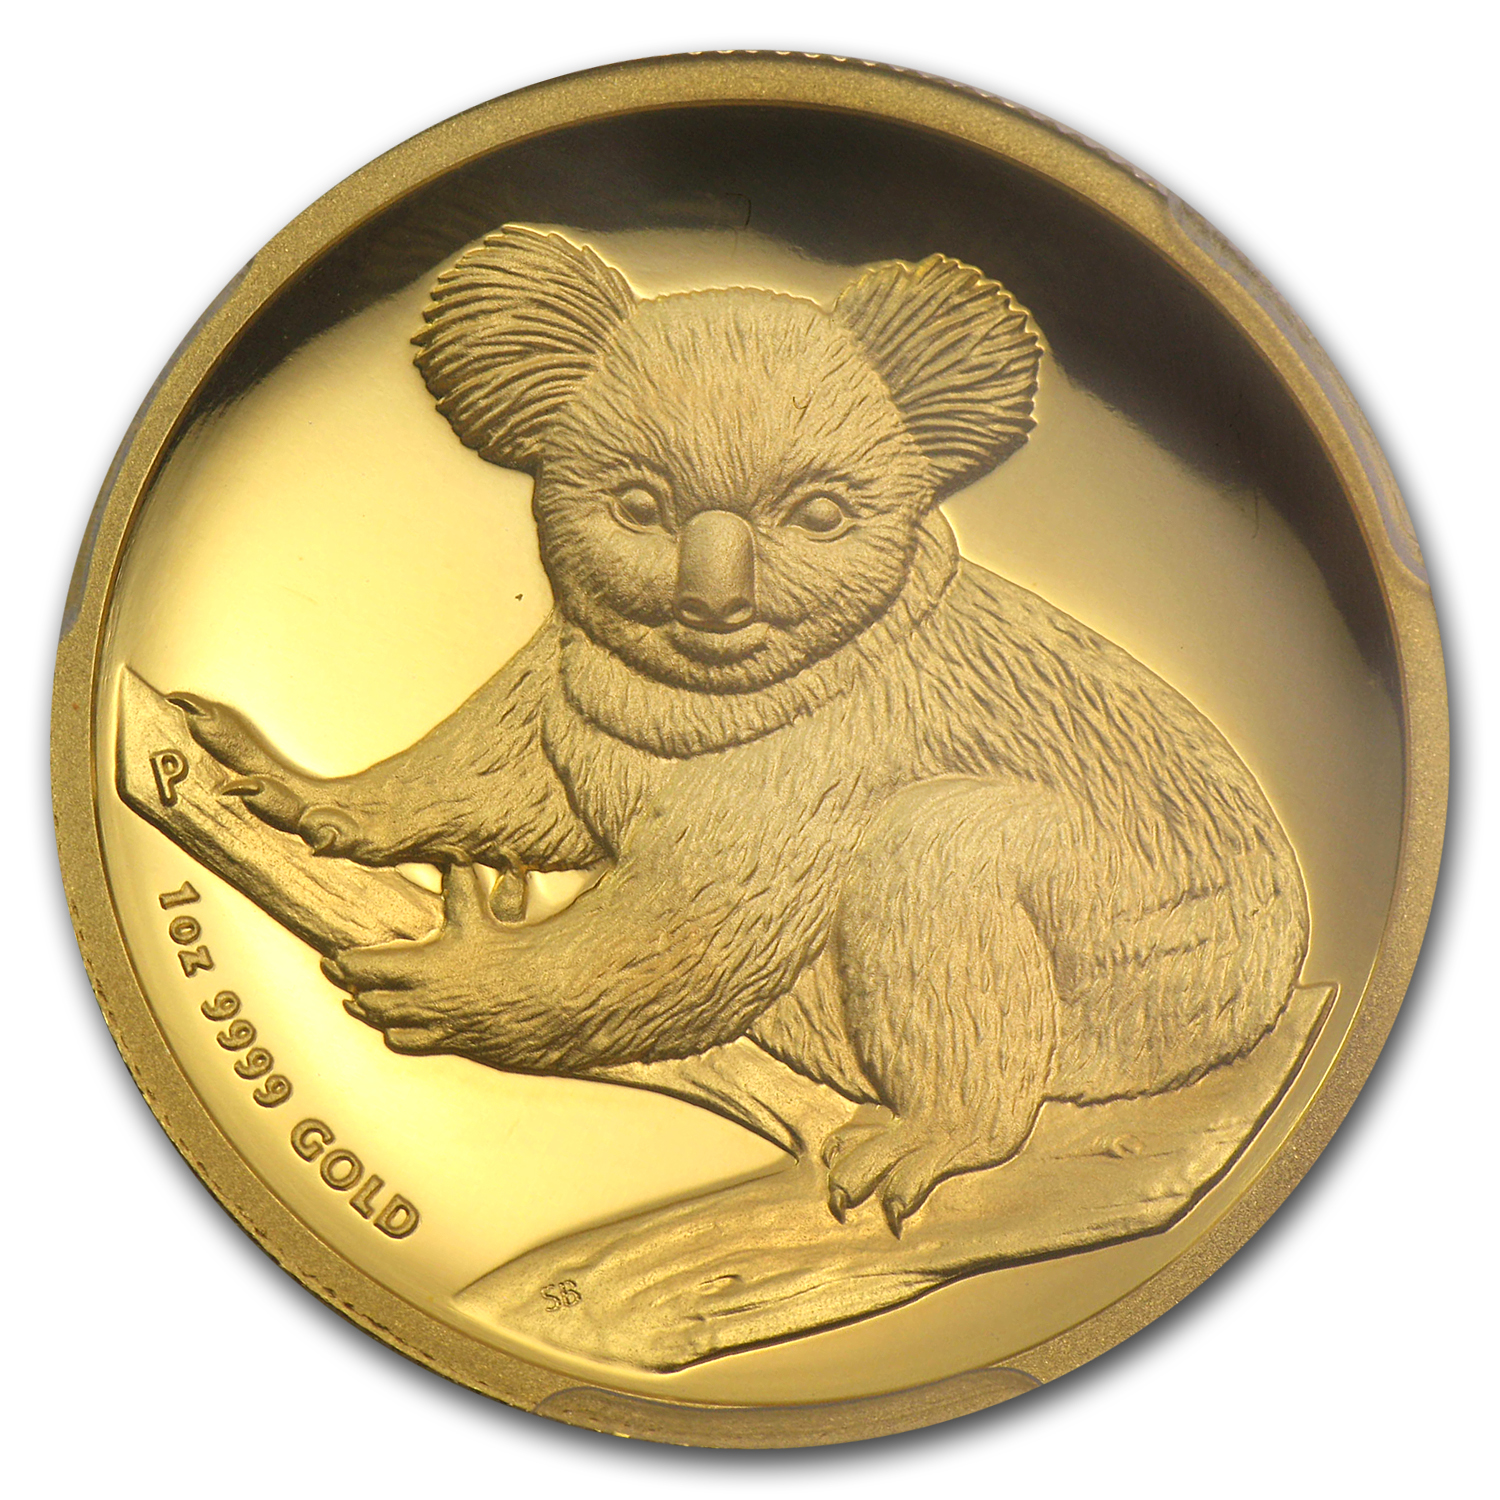 2009-P 1 oz Australian Gold Koala PR-69 PCGS (FS, High Relief)